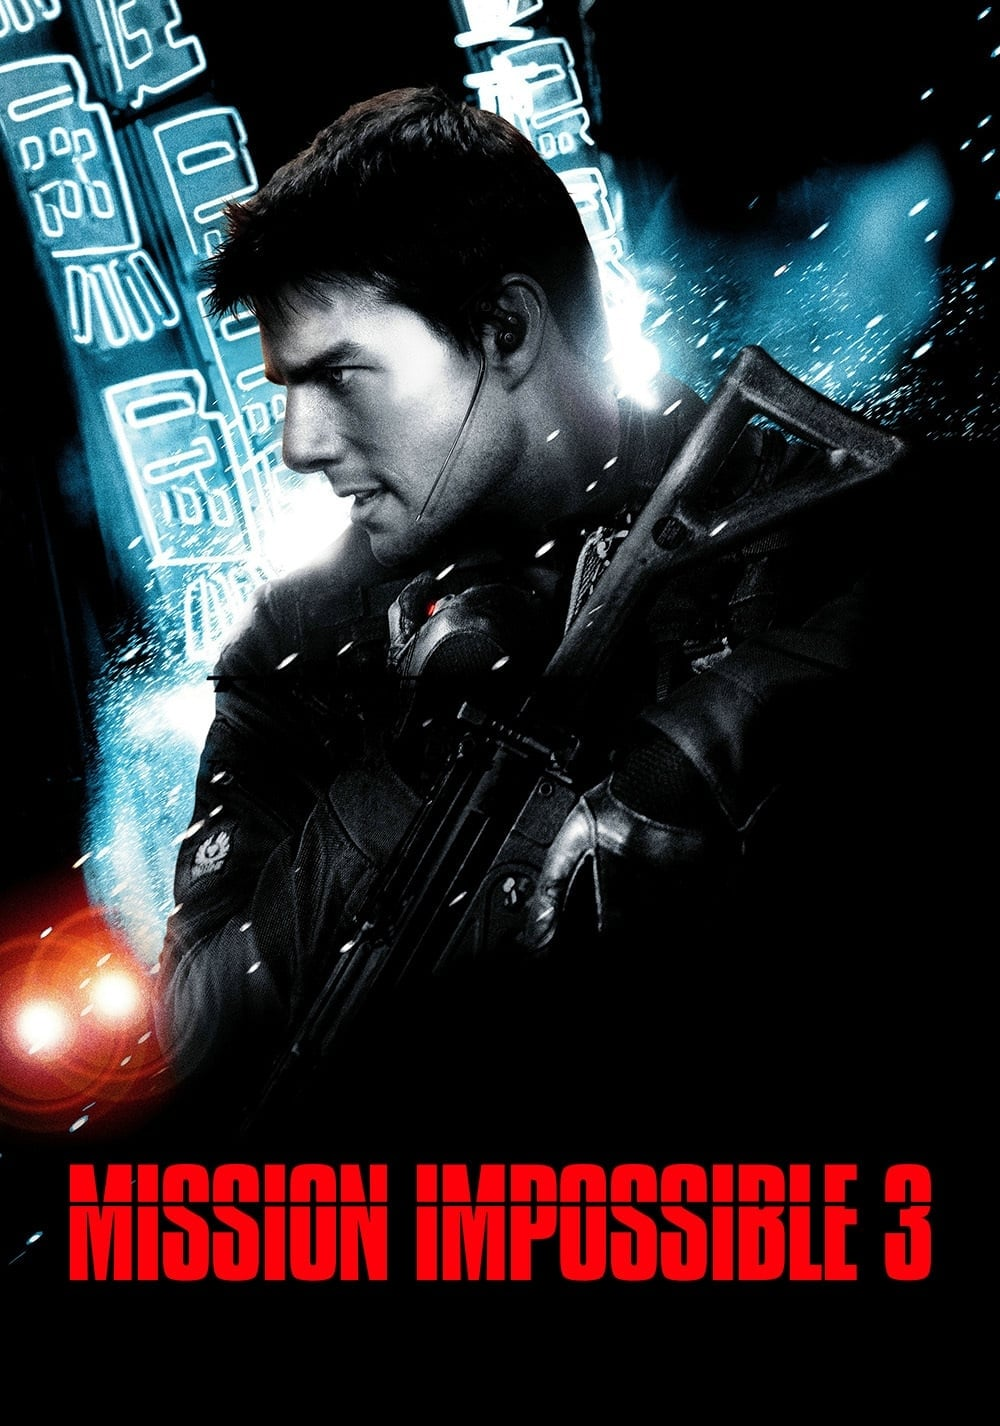 Mission Impossible Iii 2006 Watchrs Club